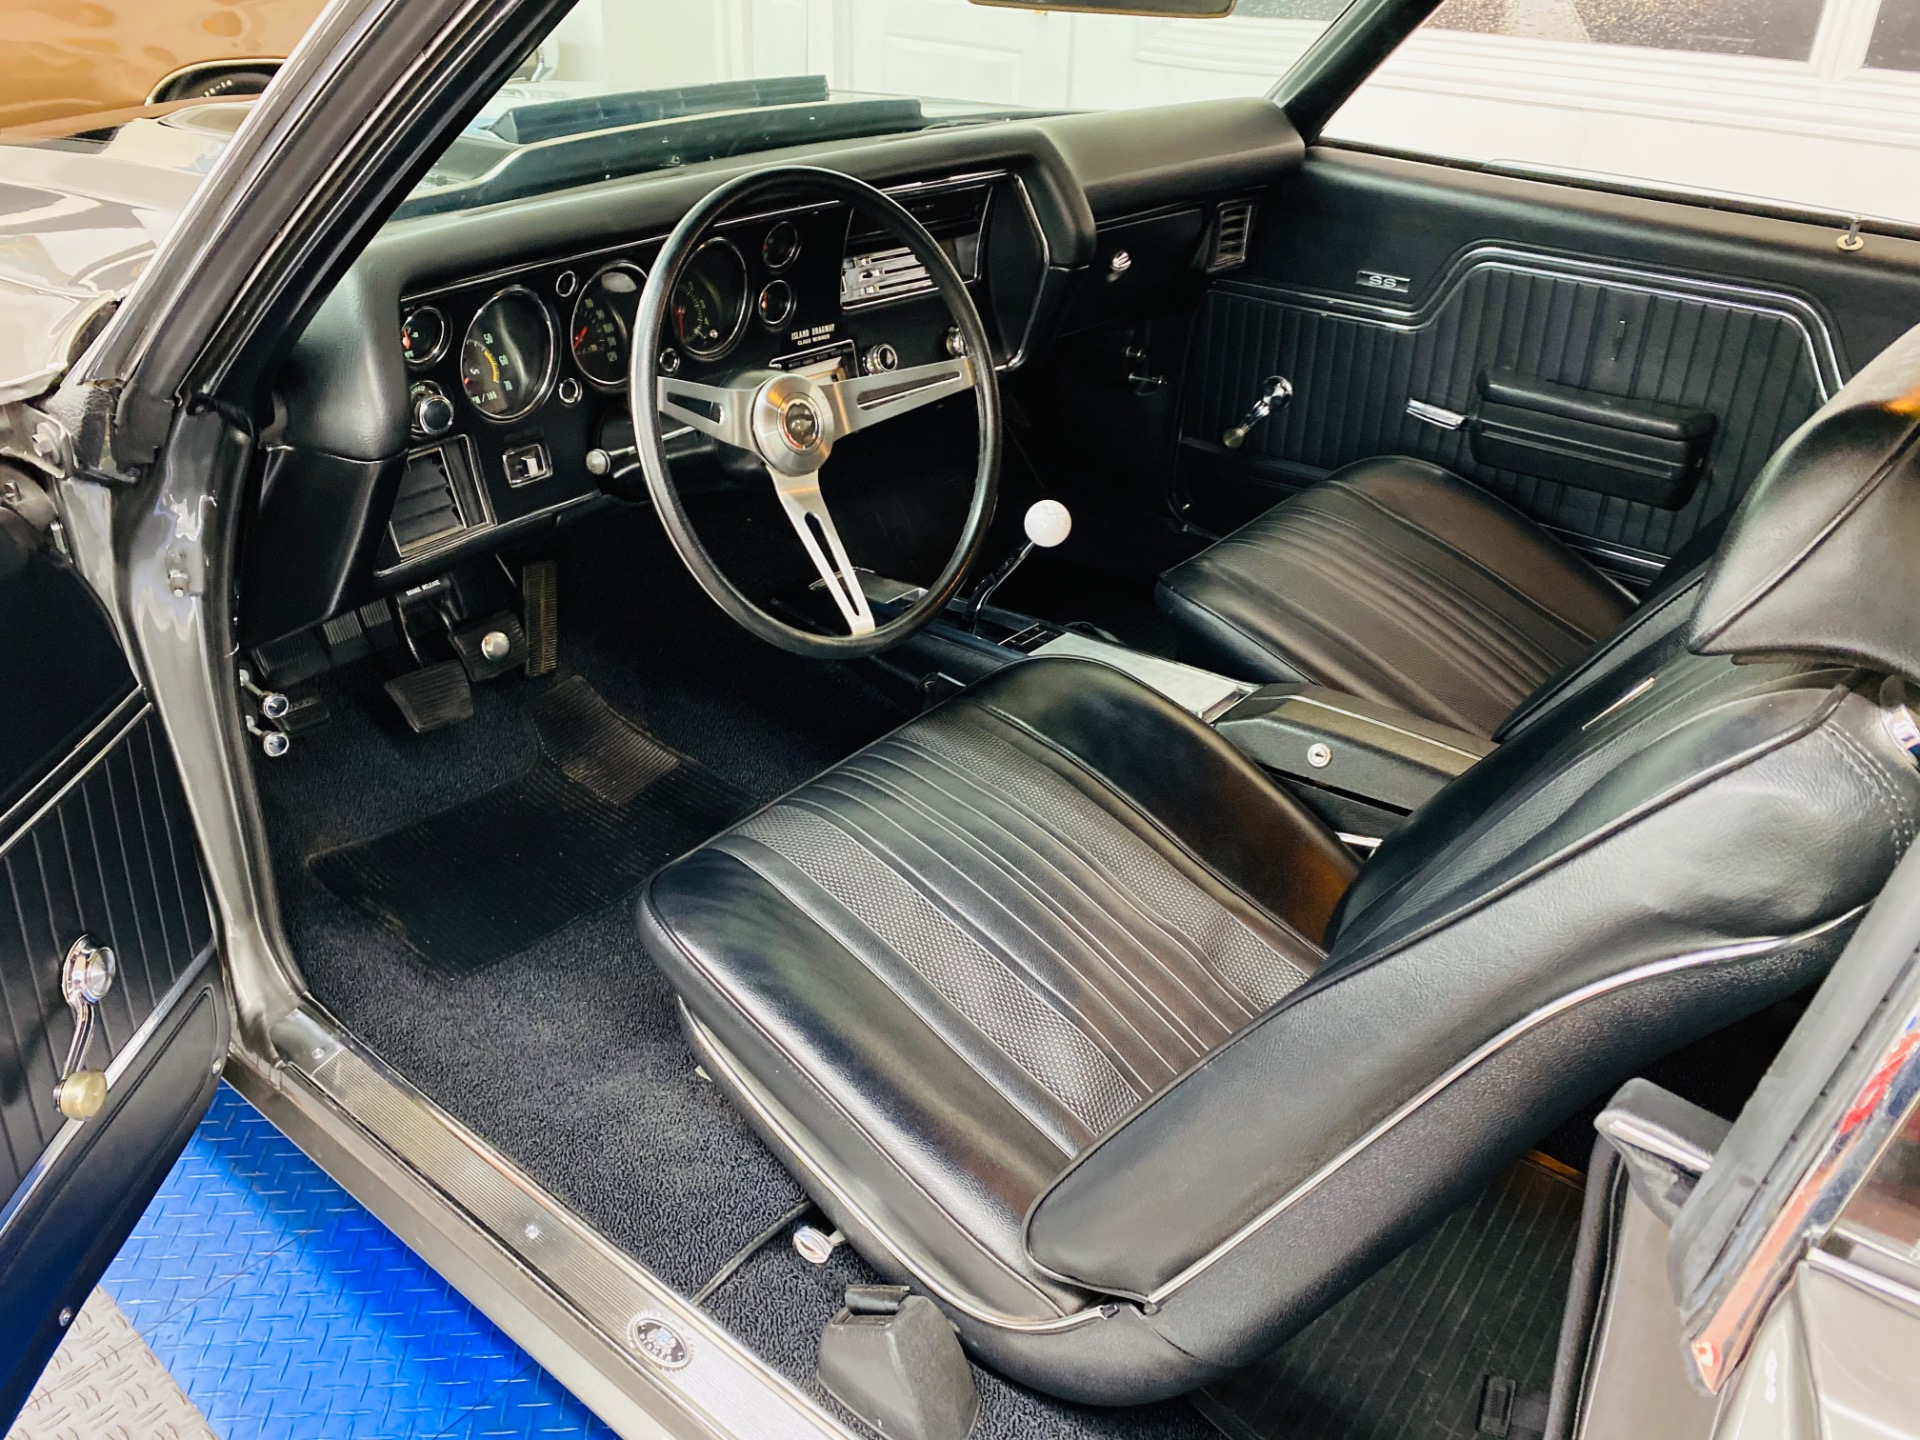 Used 1970 Chevrolet Chevelle -SS396/M21-FRAME OFF RESTORED-NUMBERS MATCHING- SEE VIDEO | Mundelein, IL